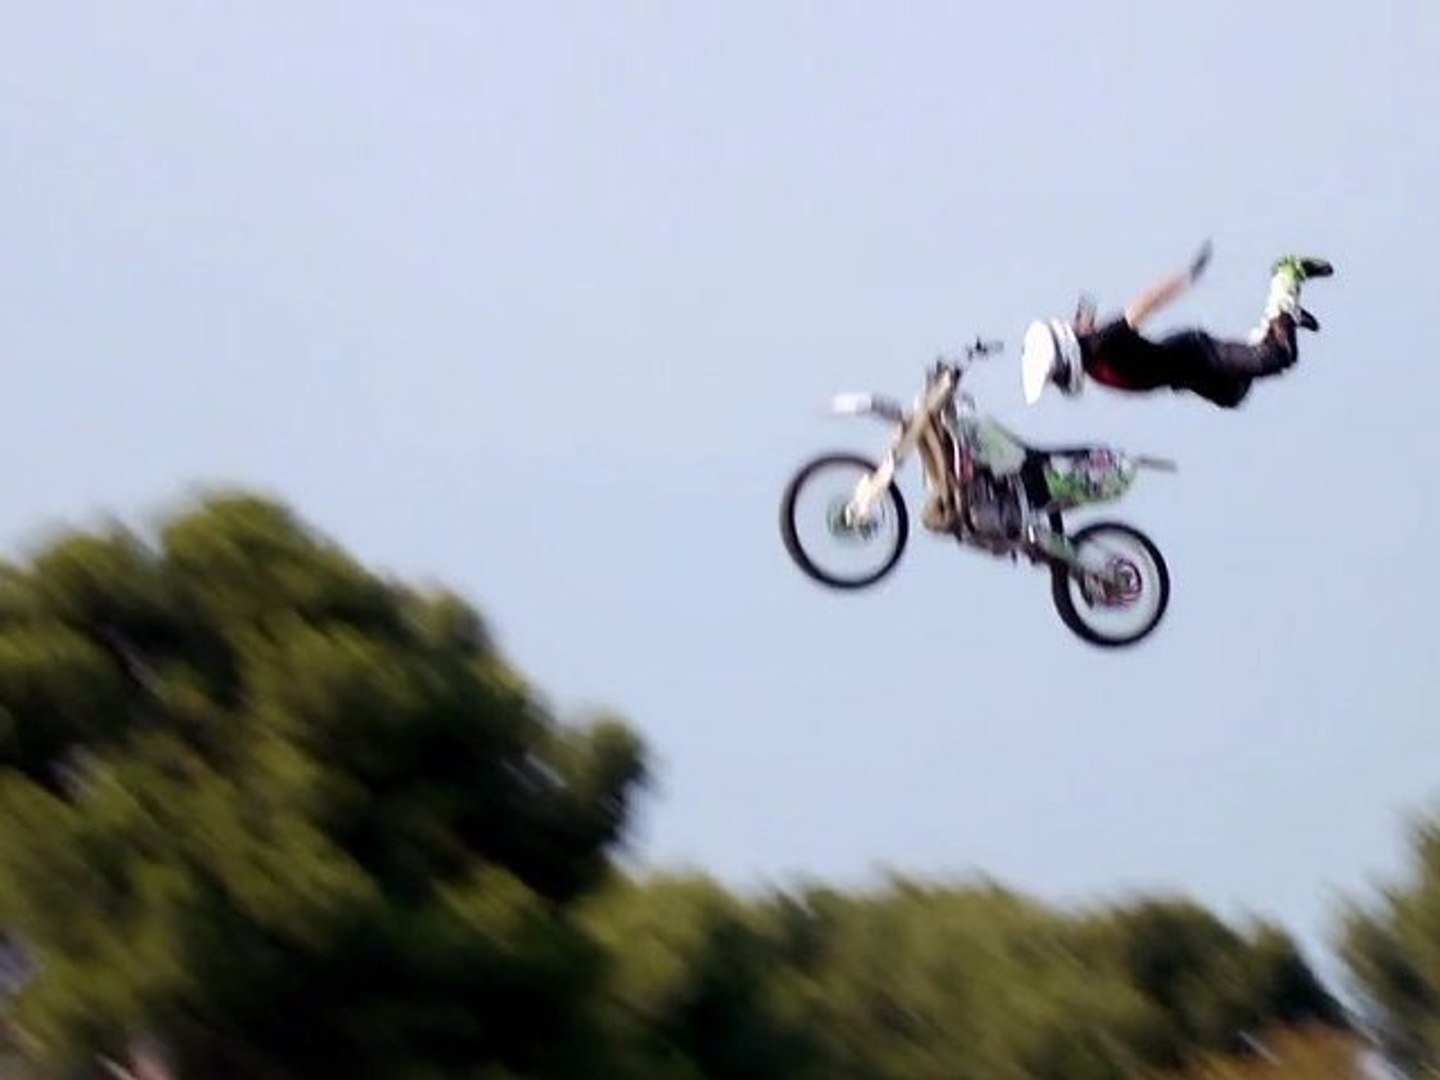 GOLD GAMES 2012 - HYERES - PART 3 - Extreme Sport event